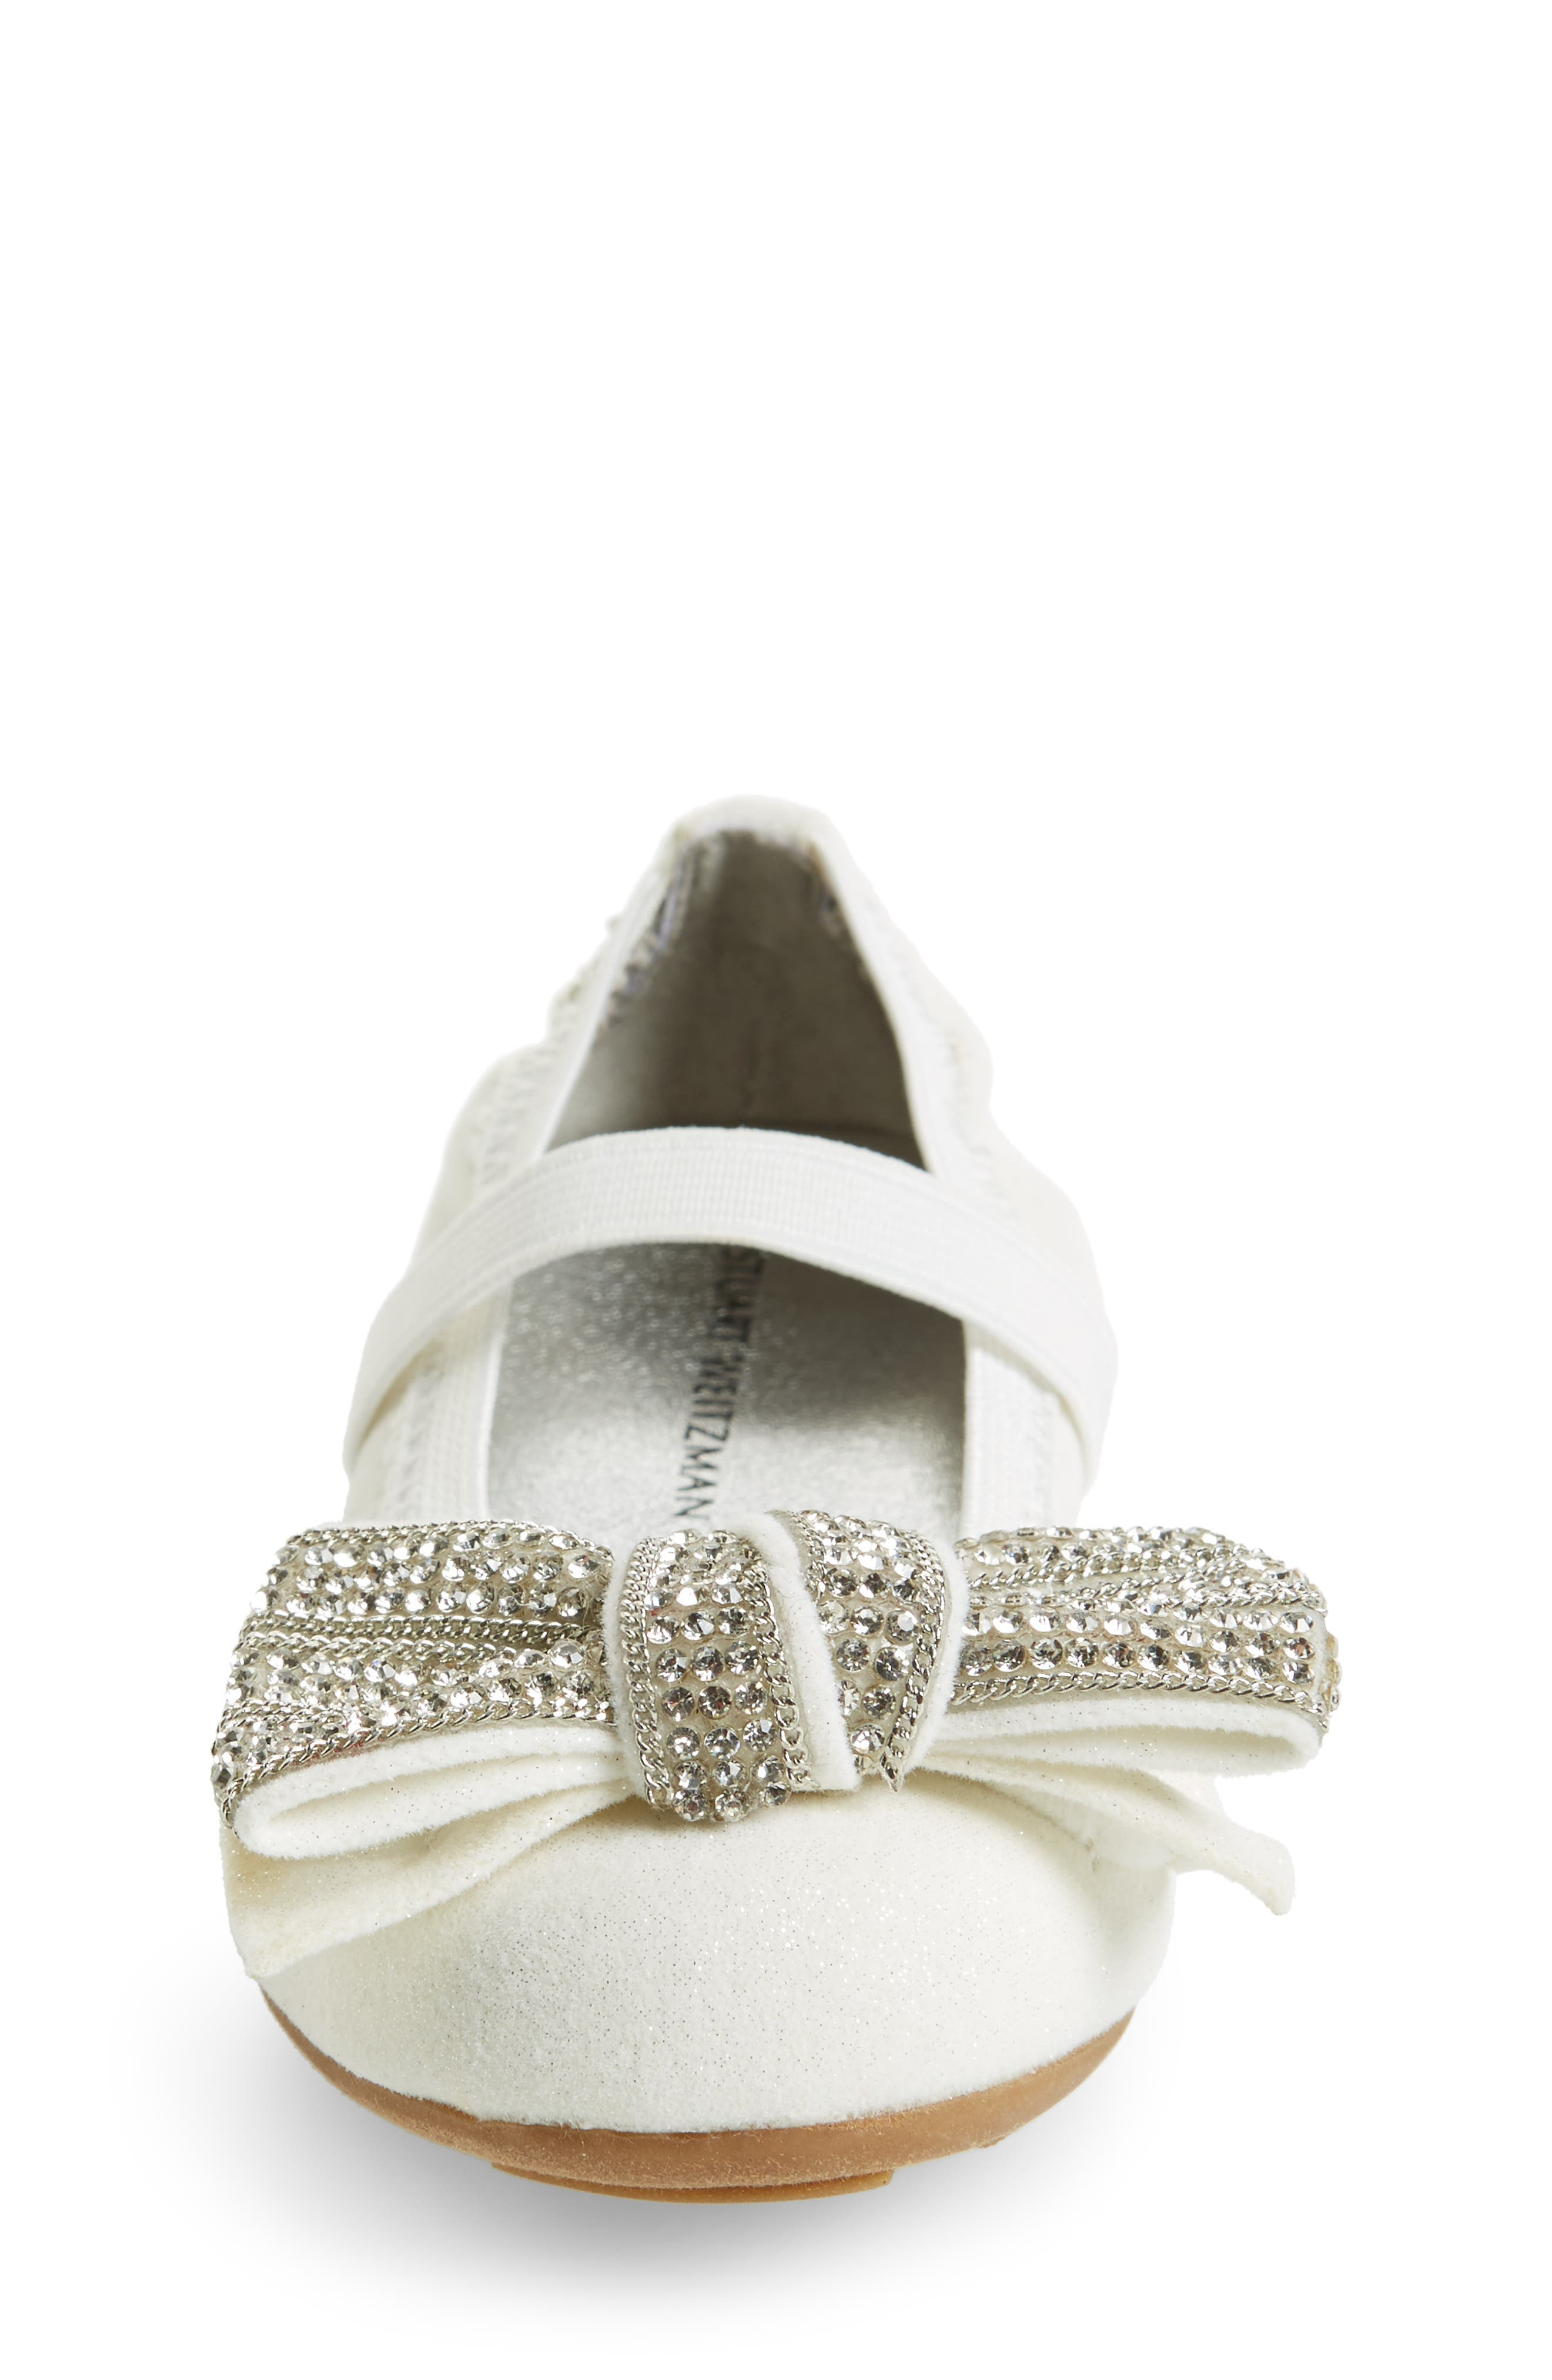 Fannie Embellished Bow Mary Jane Flat,                             Alternate thumbnail 4, color,                             White